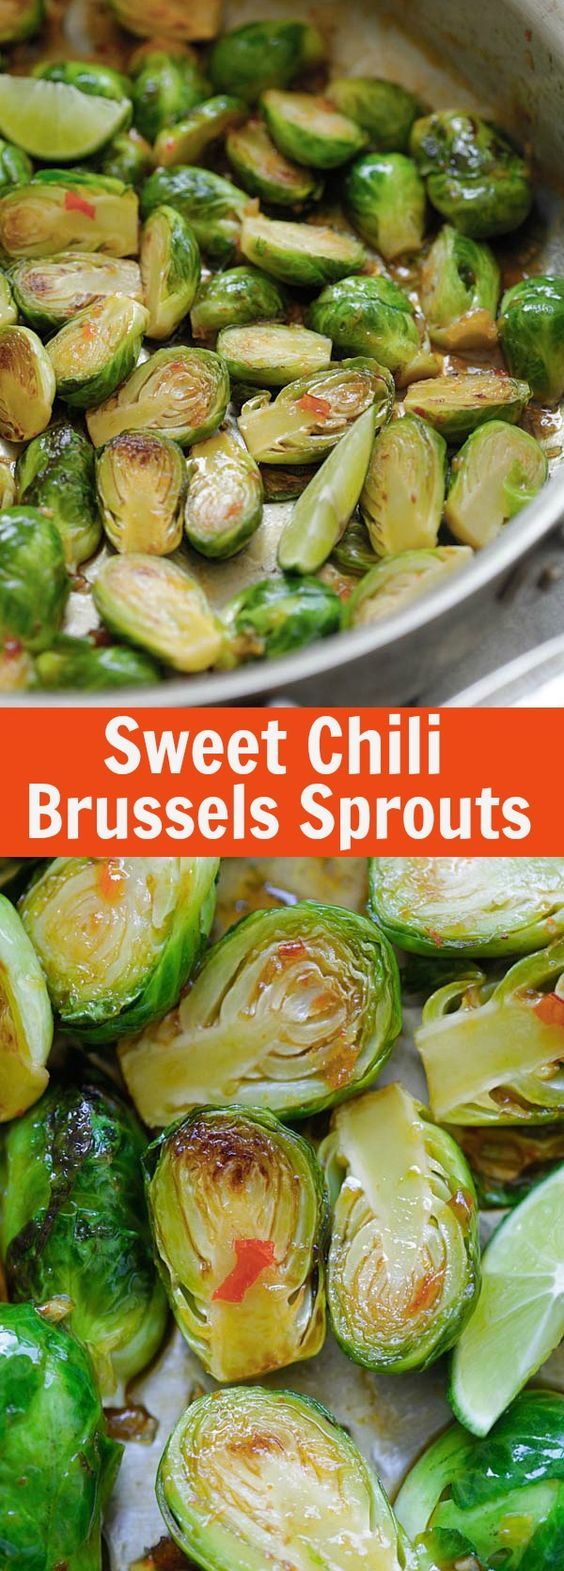 Sweet Chili Brussels Sprouts – easy and delicious sauteed brussels sprouts with Thai sweet chili sauce. Takes 15 mins to make. Read more at